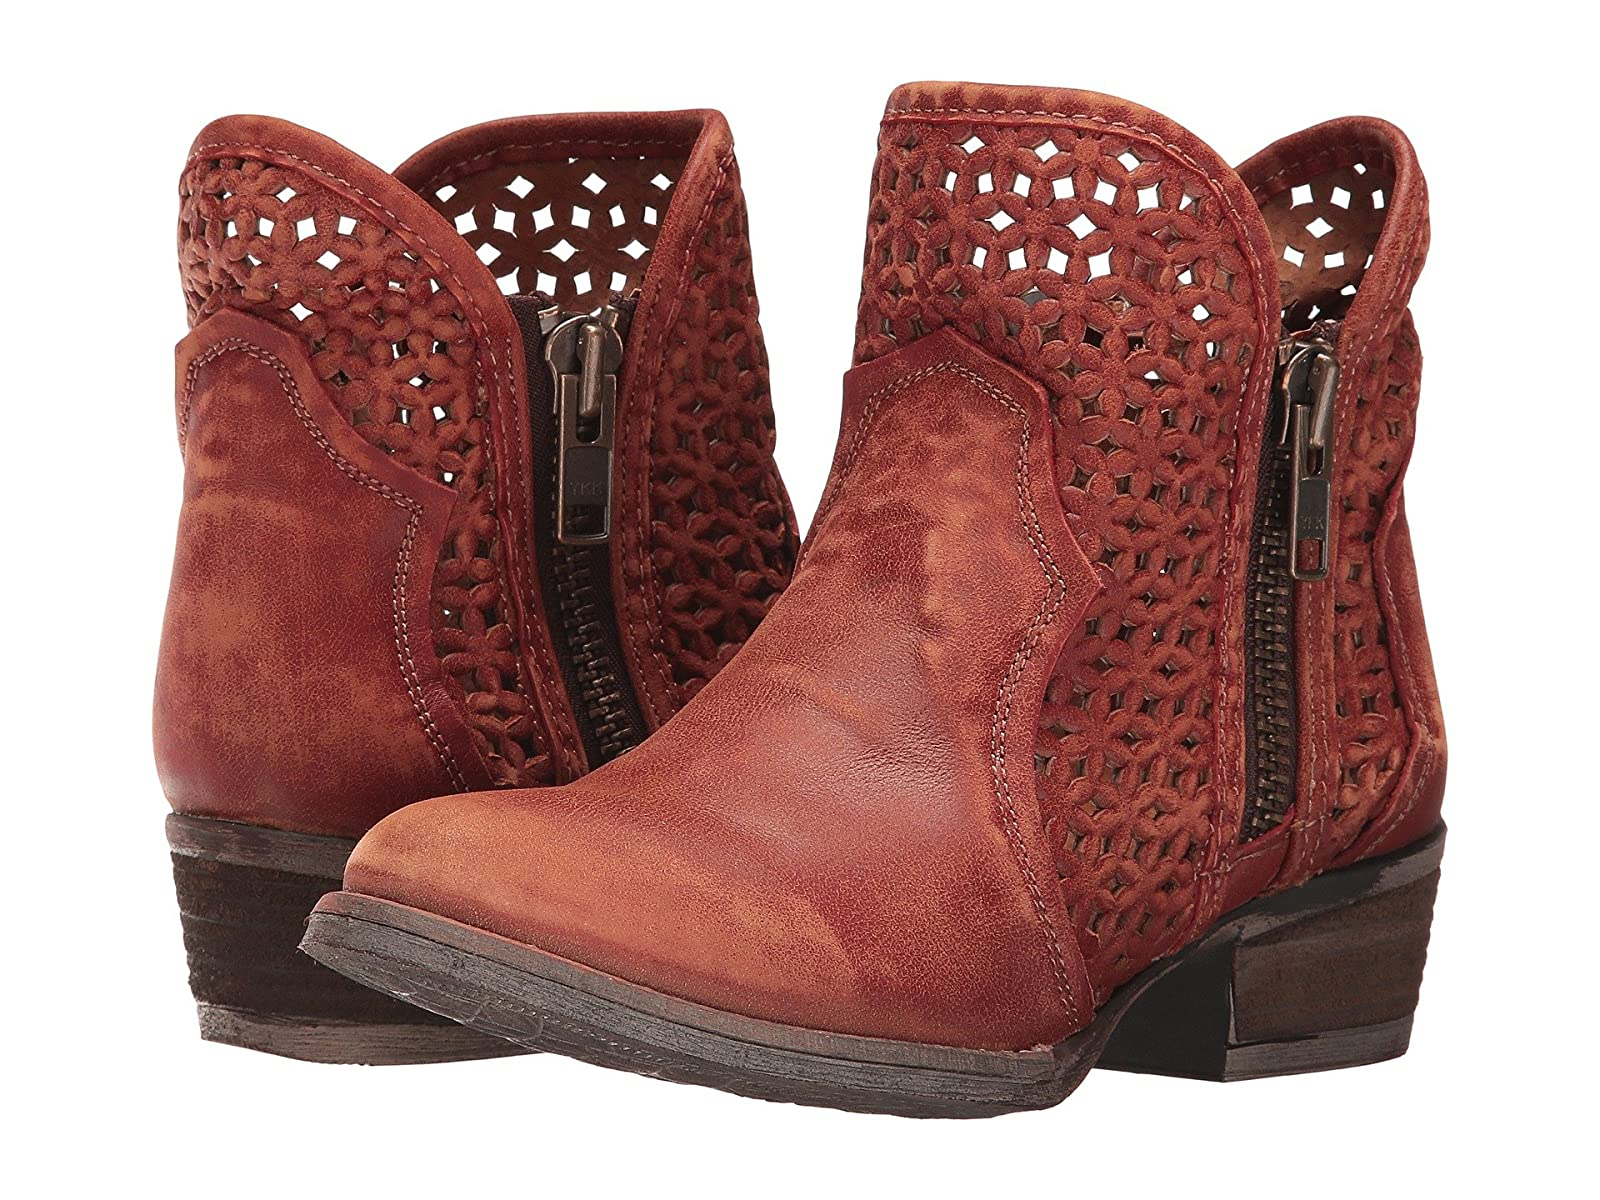 Corral Boots Q0003Affordable and distinctive shoes